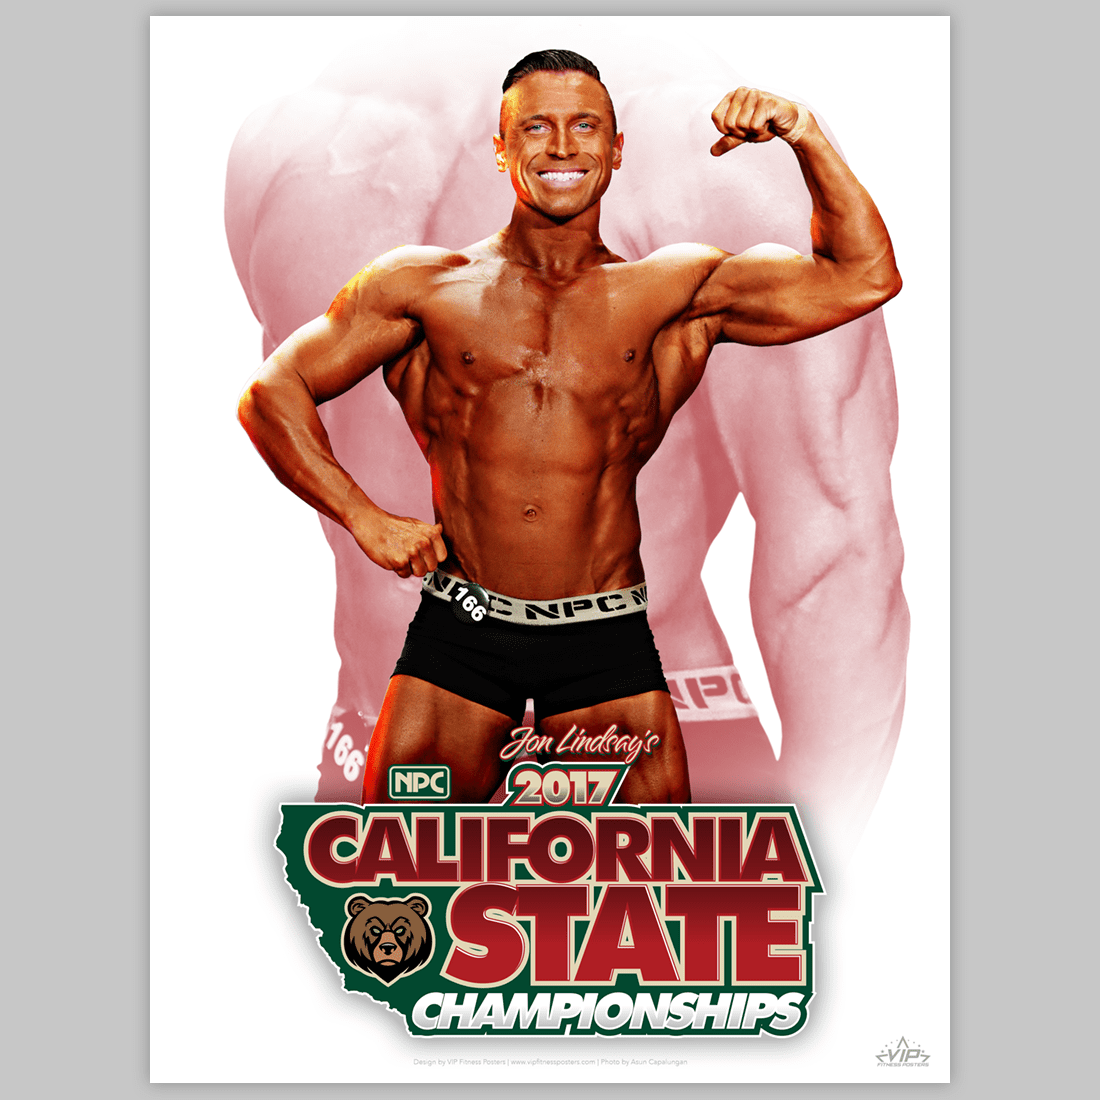 VIP Fitness posters for NPC and IFBB fitness competitors